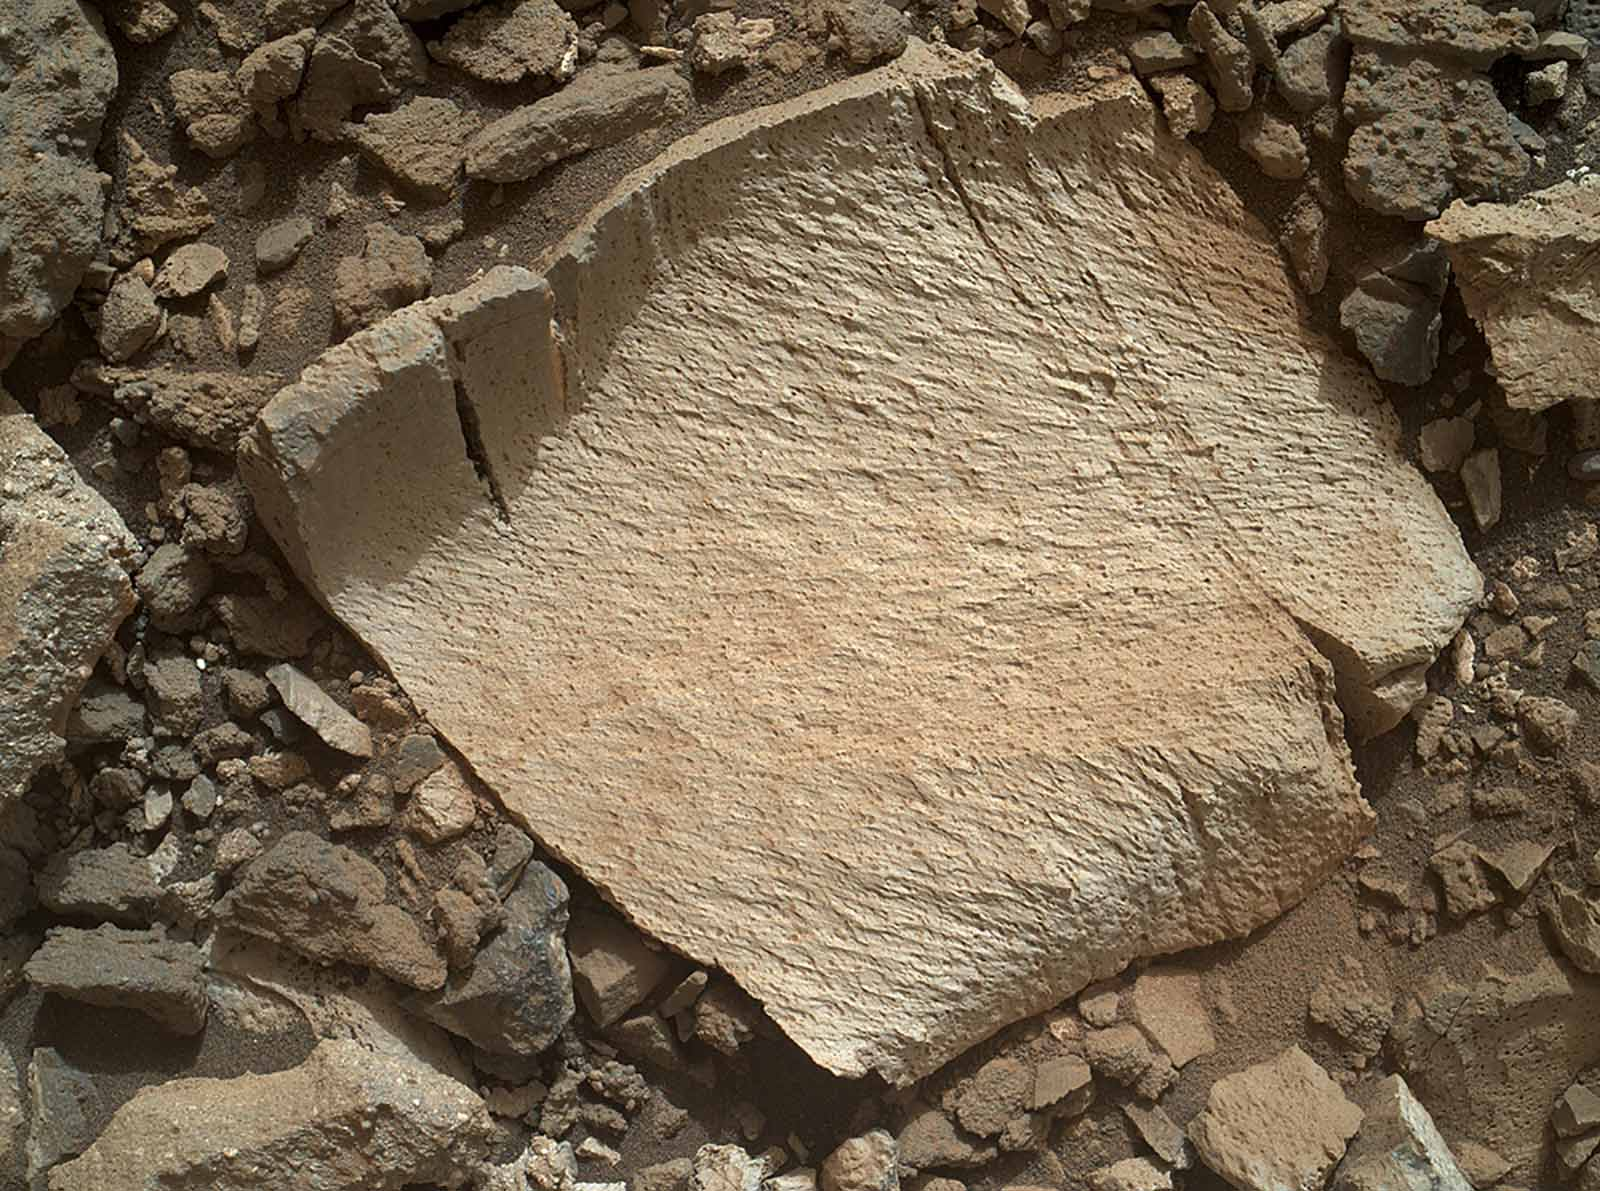 A rock from the deepest part of the ancient Martian lake